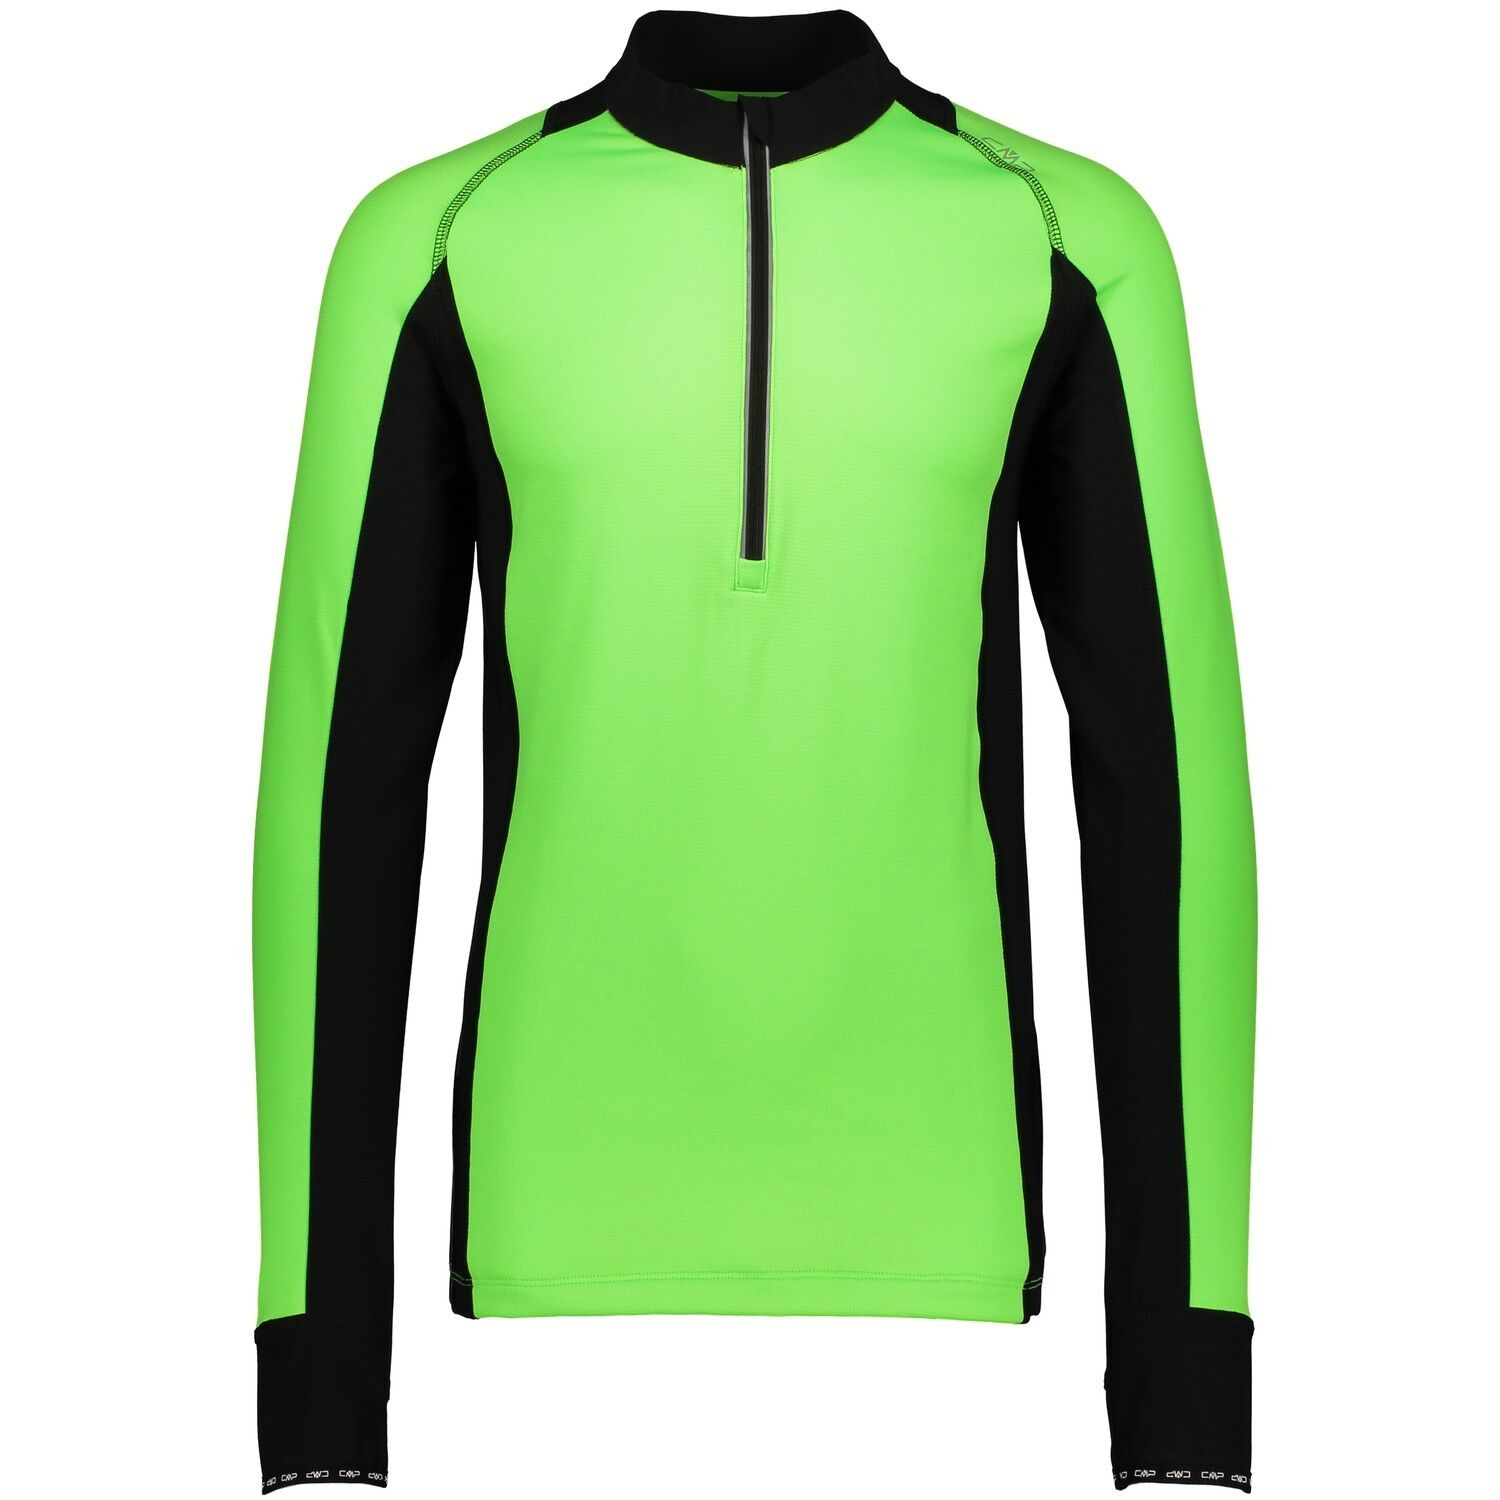 CMP running shirt Function Top Collar Shirt Green Mesh gridTECH  Zipper  special offer